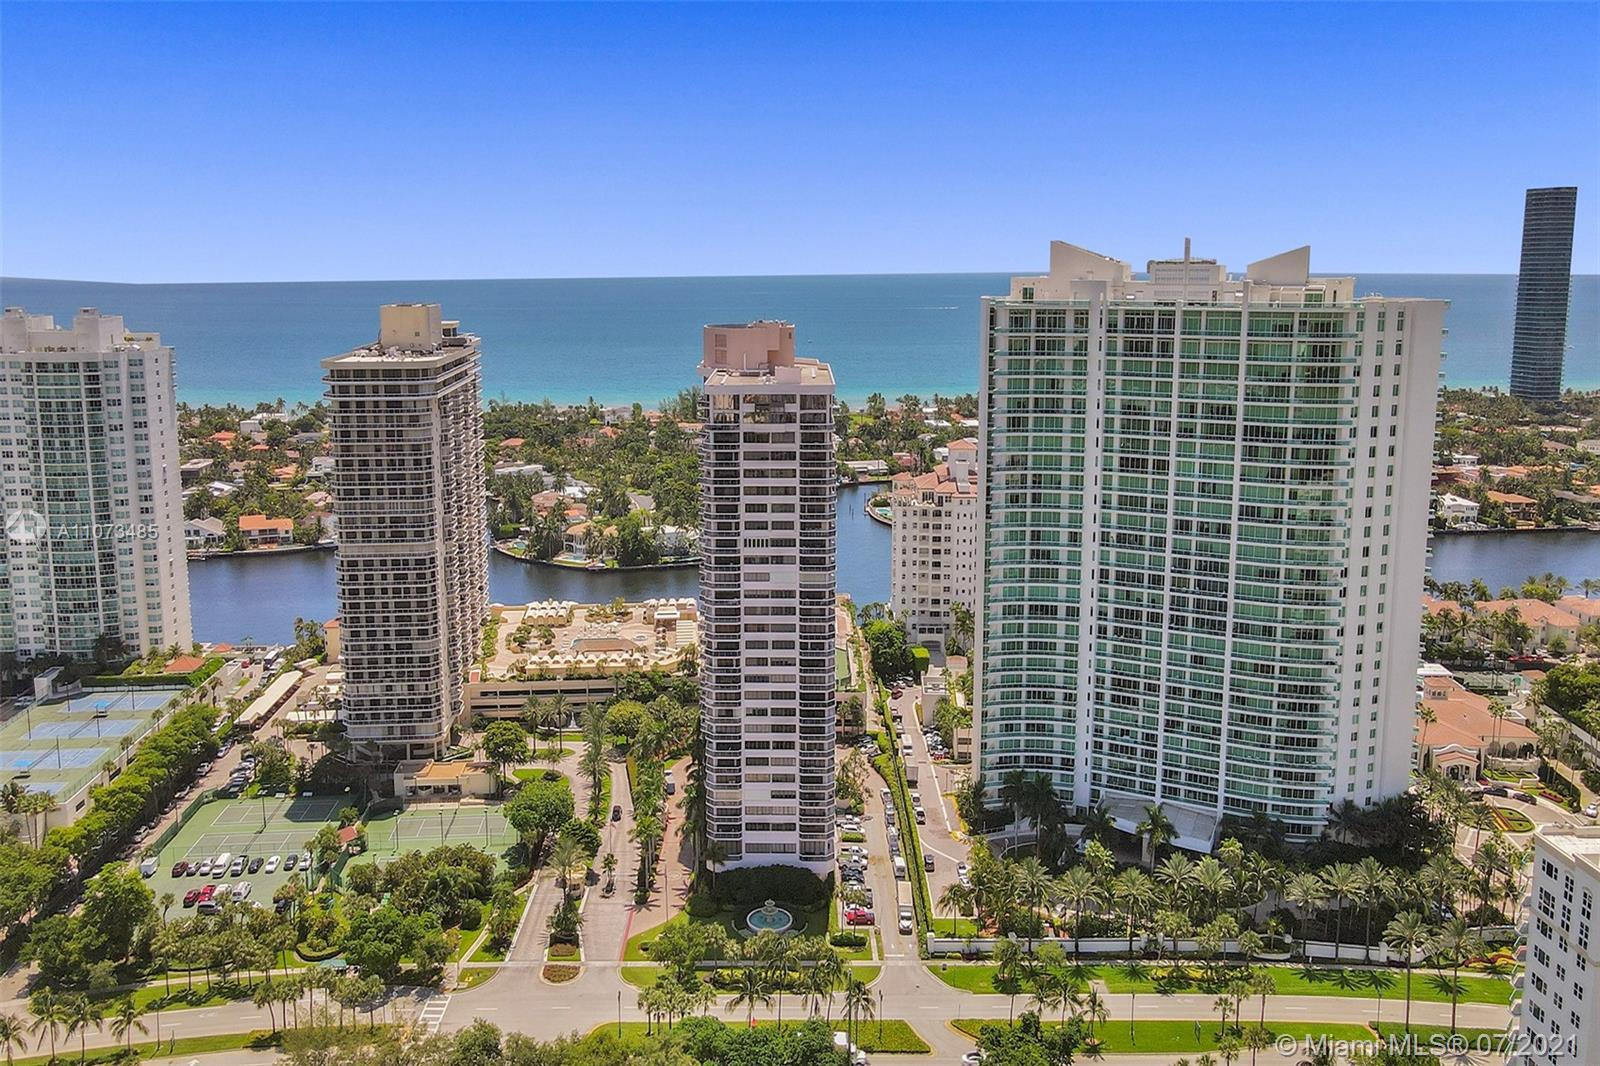 Enjoy the Ocean, Golf Course and sunset views from this charming 2 bed/ 2 bath condo in The Landmark